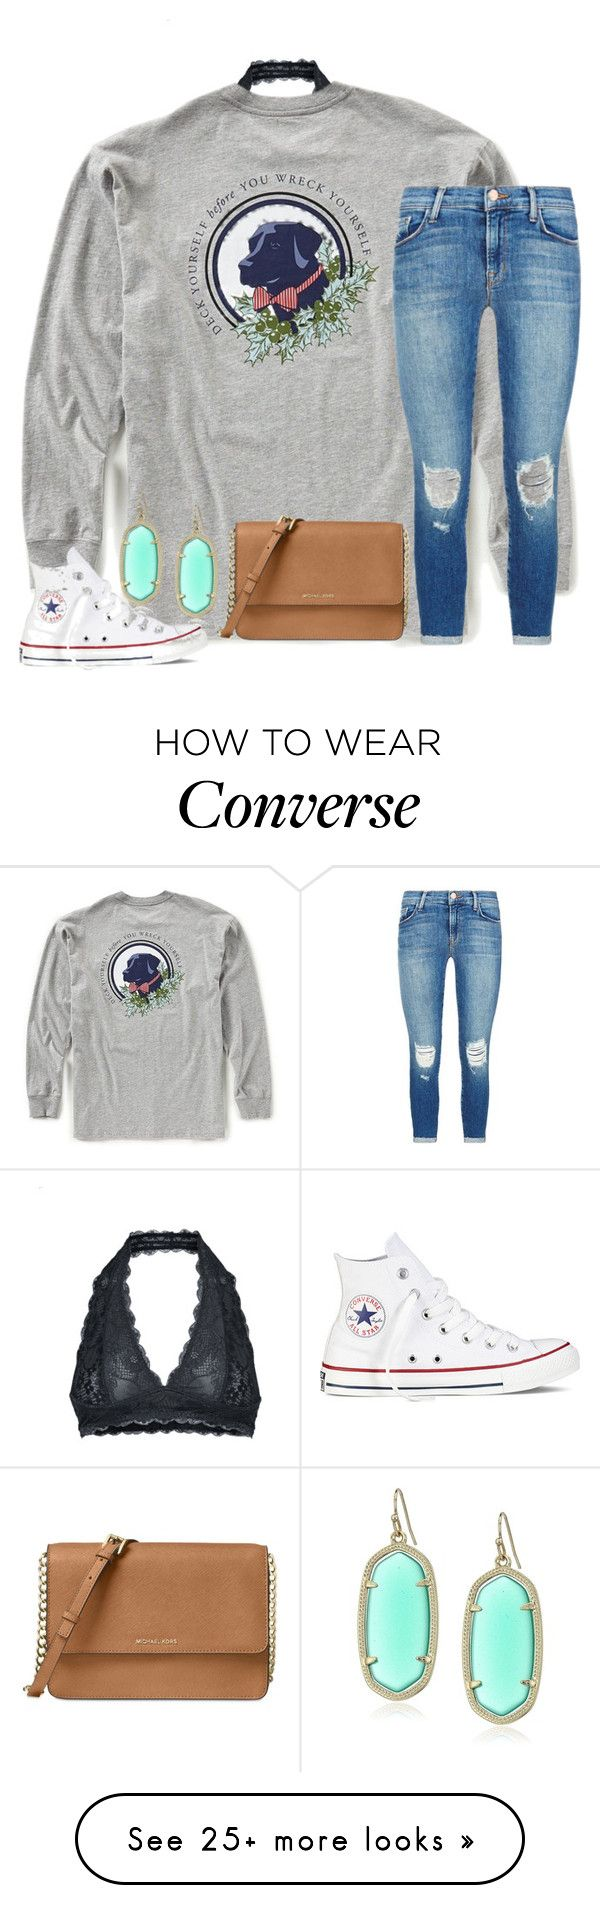 """Marry me by Thomas Rhett"" by hannahmae24 on Polyvore featuring Free People, Southern Proper, Michael Kors, Kendra Scott, Converse and J Brand"